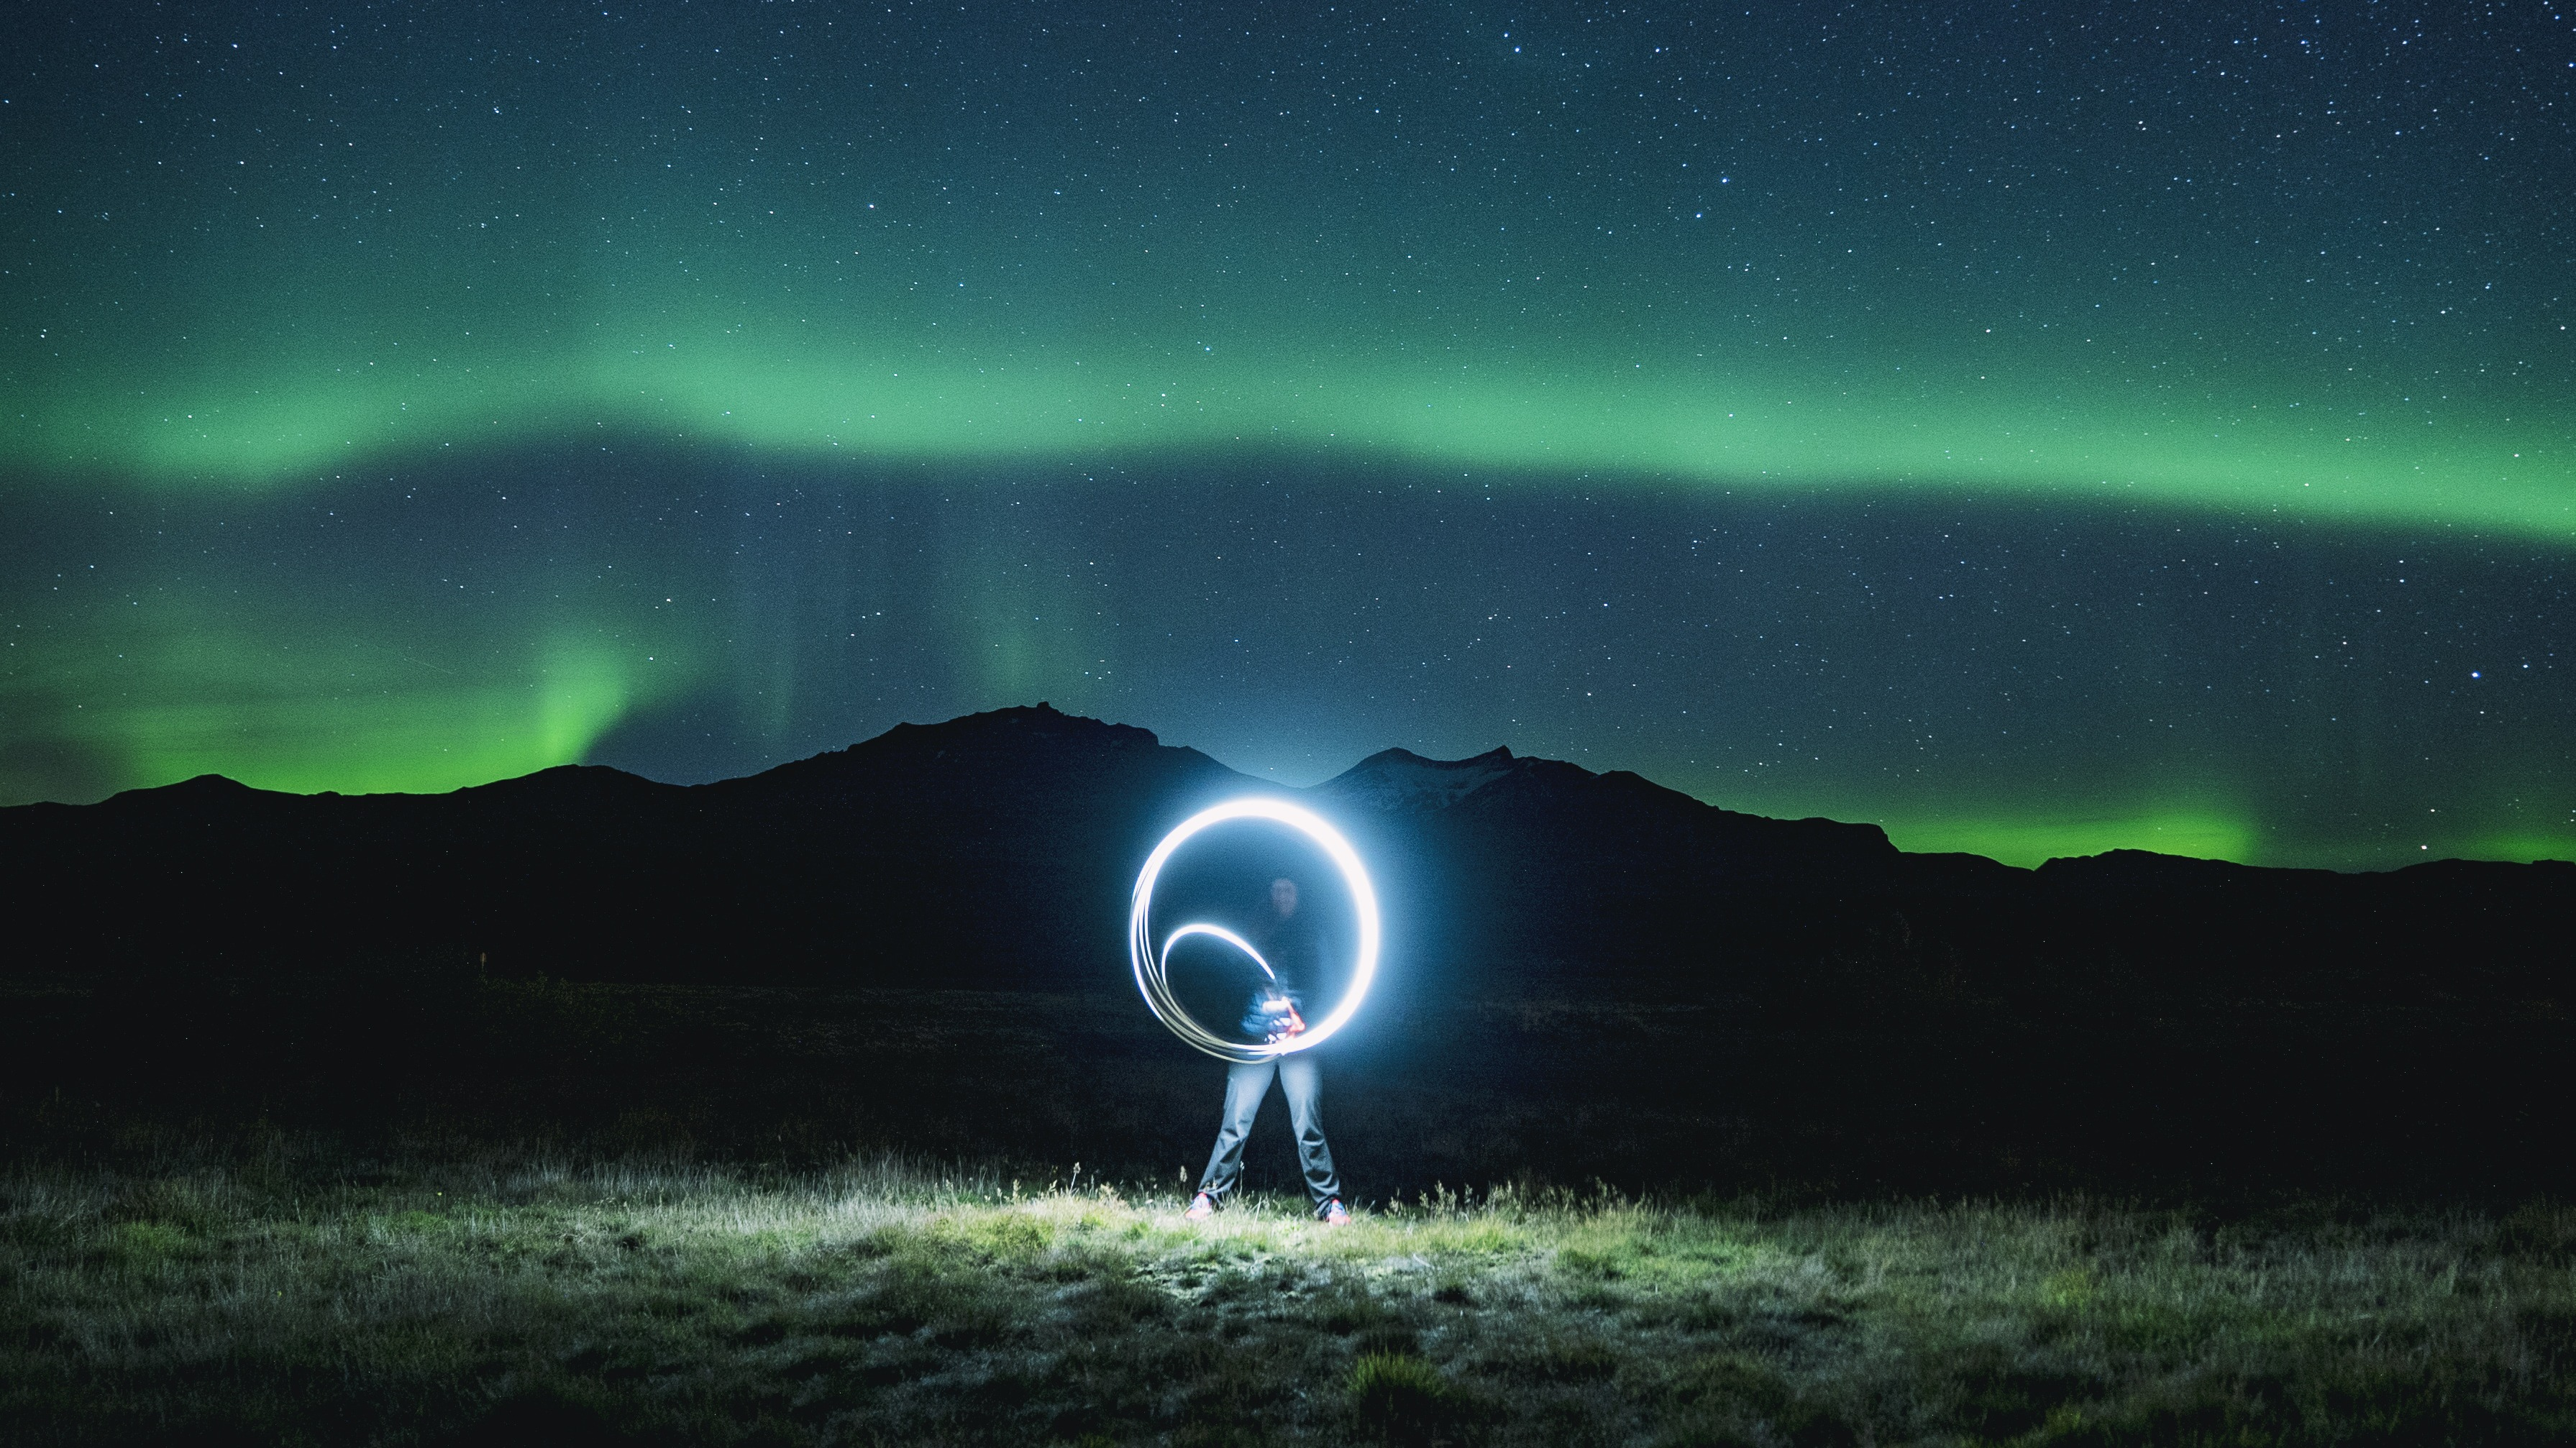 Don't be afraid of the dark - Northern lights